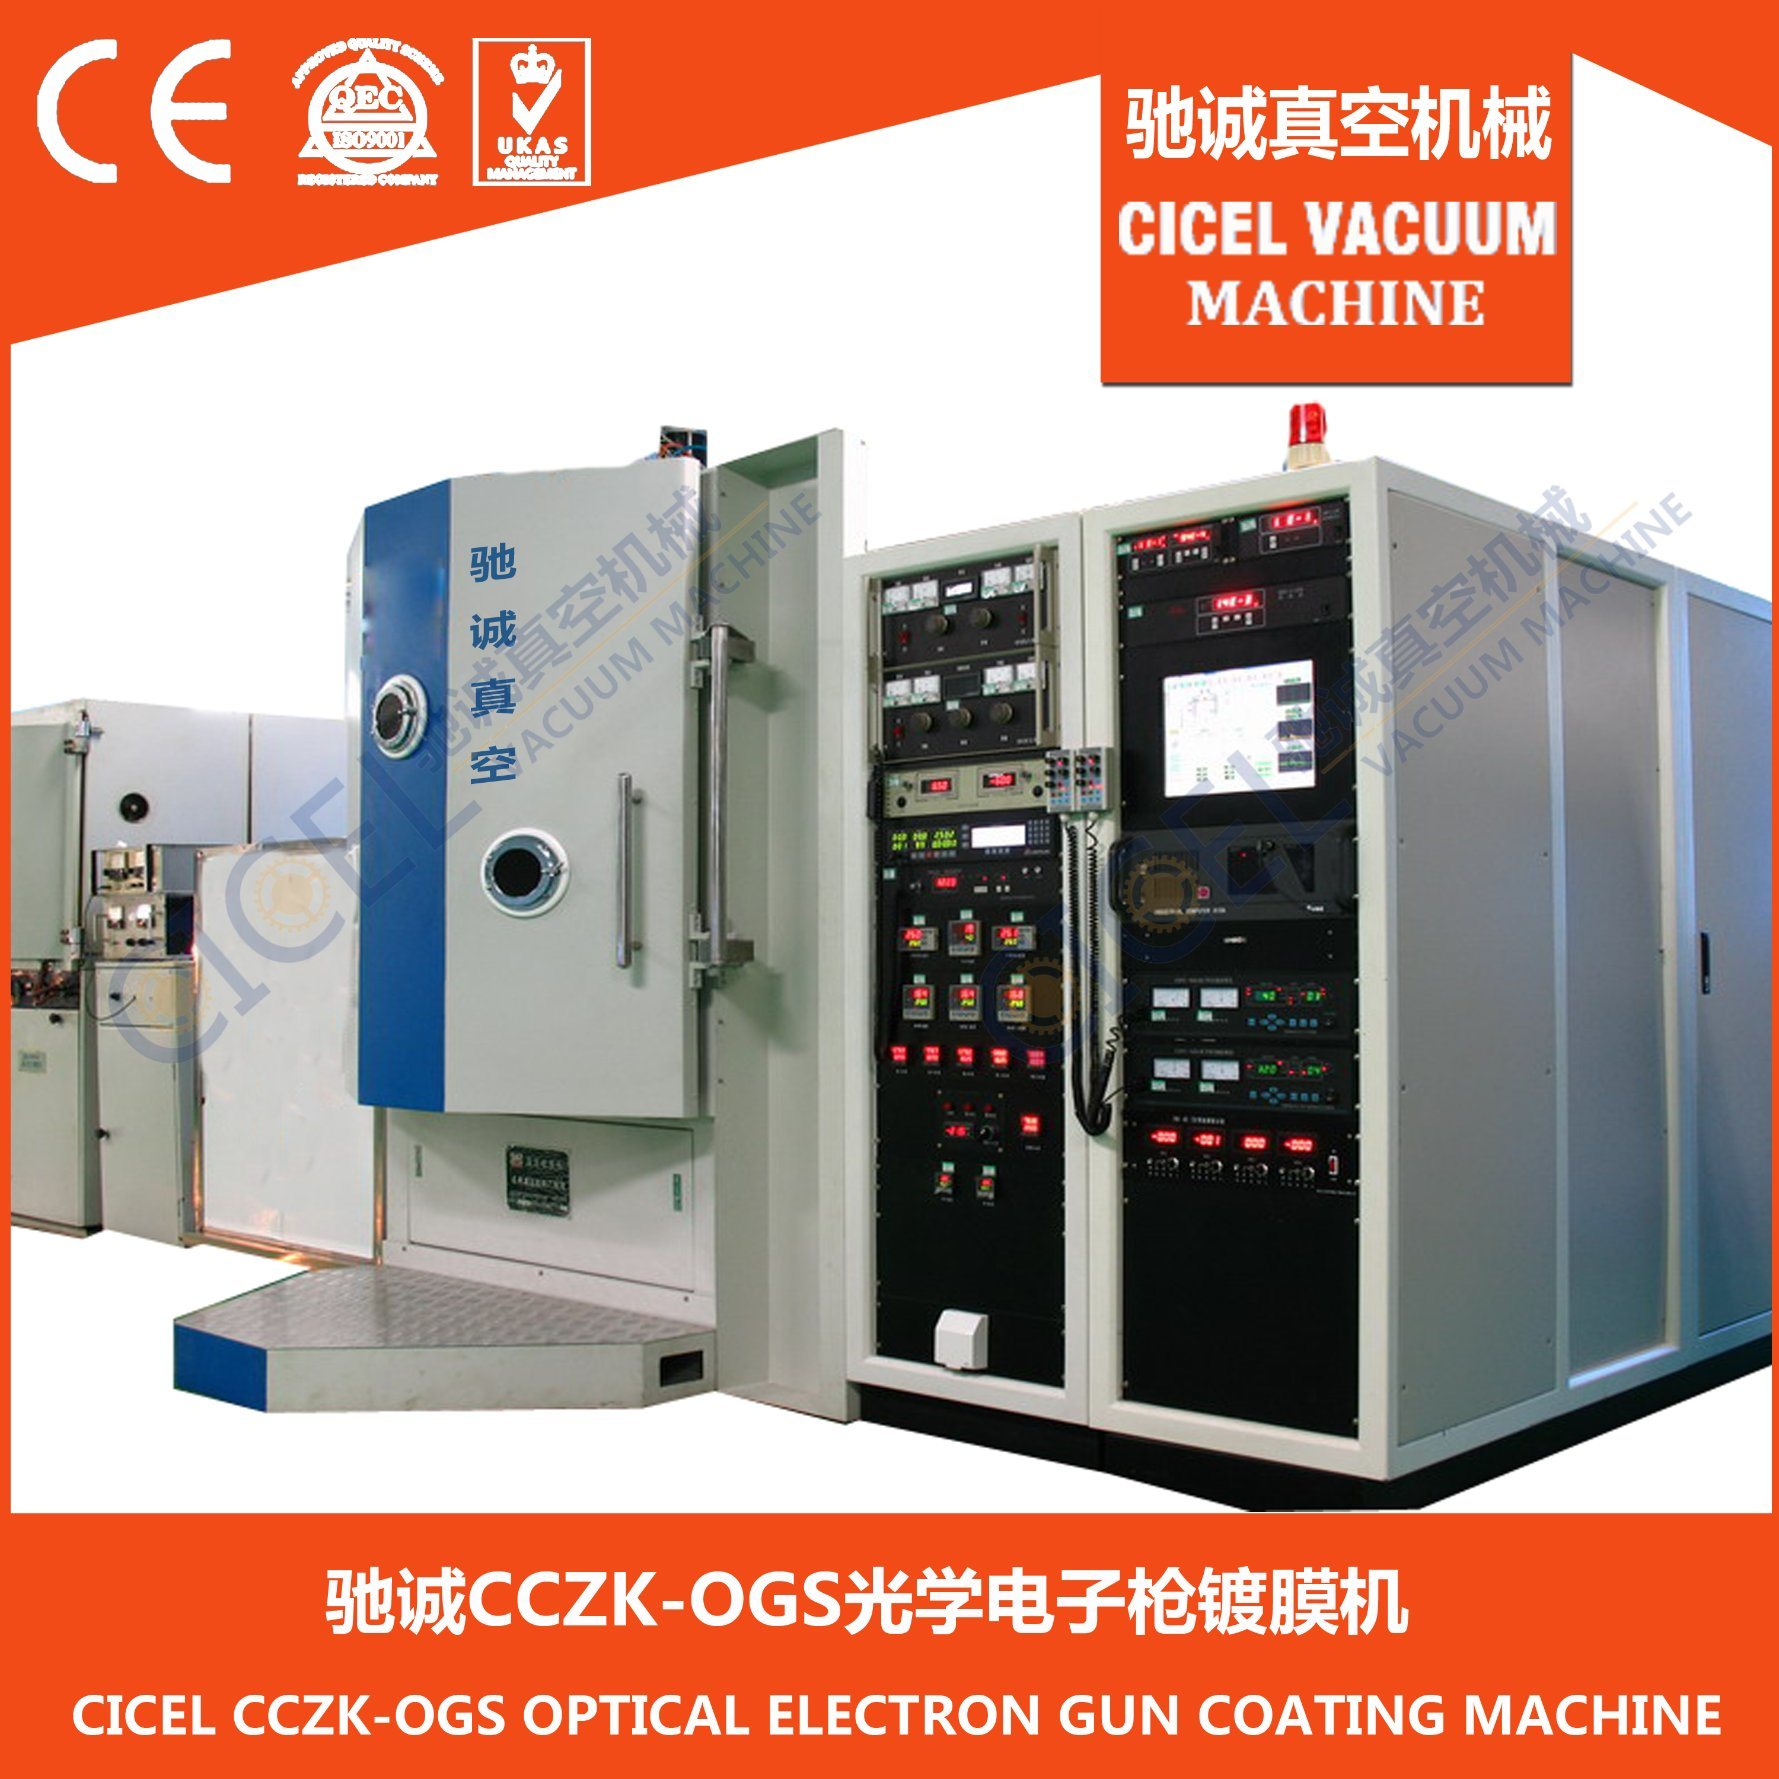 Cicel Golden, Rose Gold, Black, Blue, Rainbow Color Multi Arc Ion PVD Coating Machine for Stainless Steel, Glass, Metal, Ceramic, Crystal